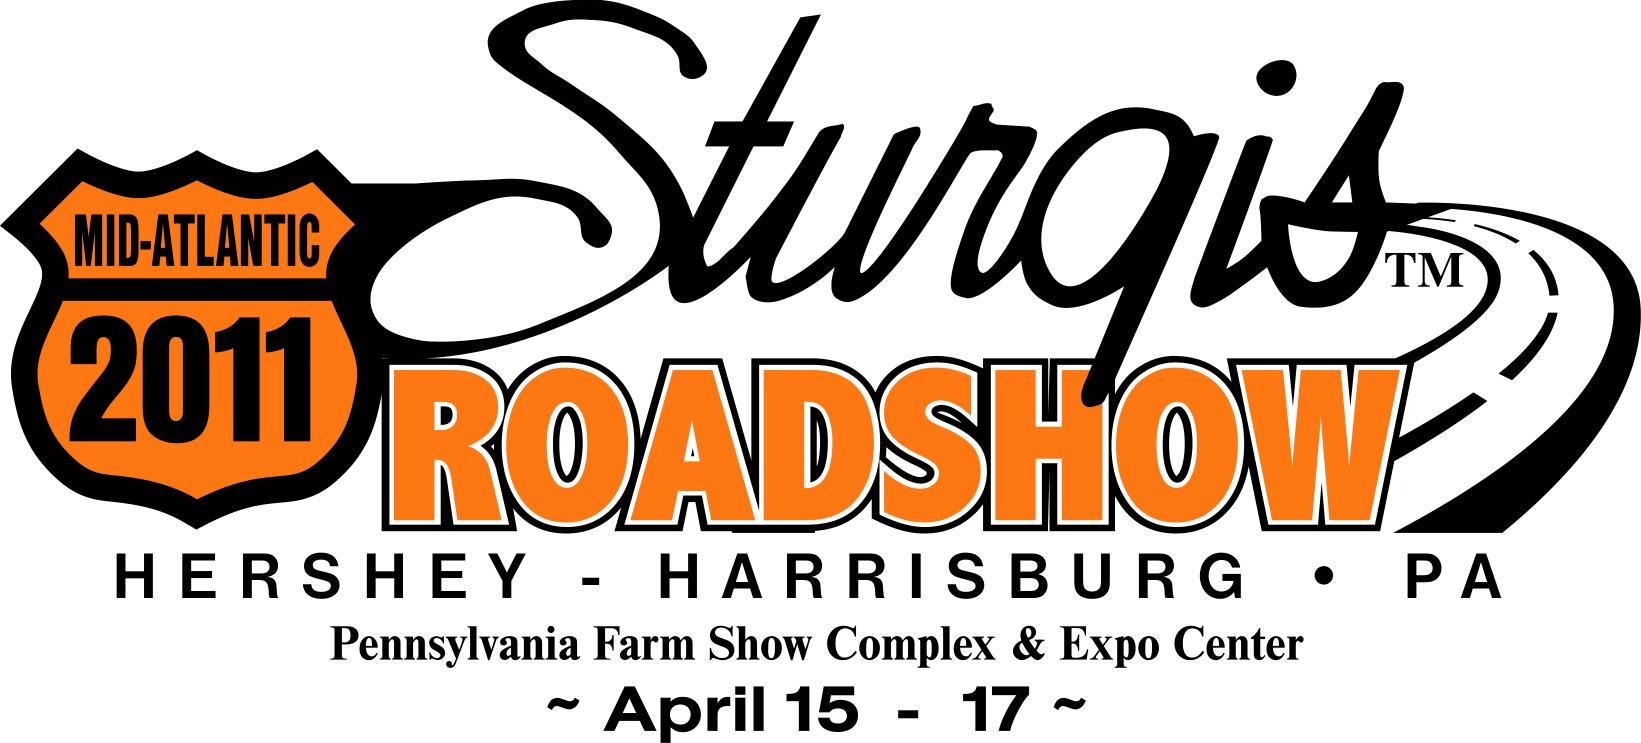 motorcycle lawyers Sturgis Road Show